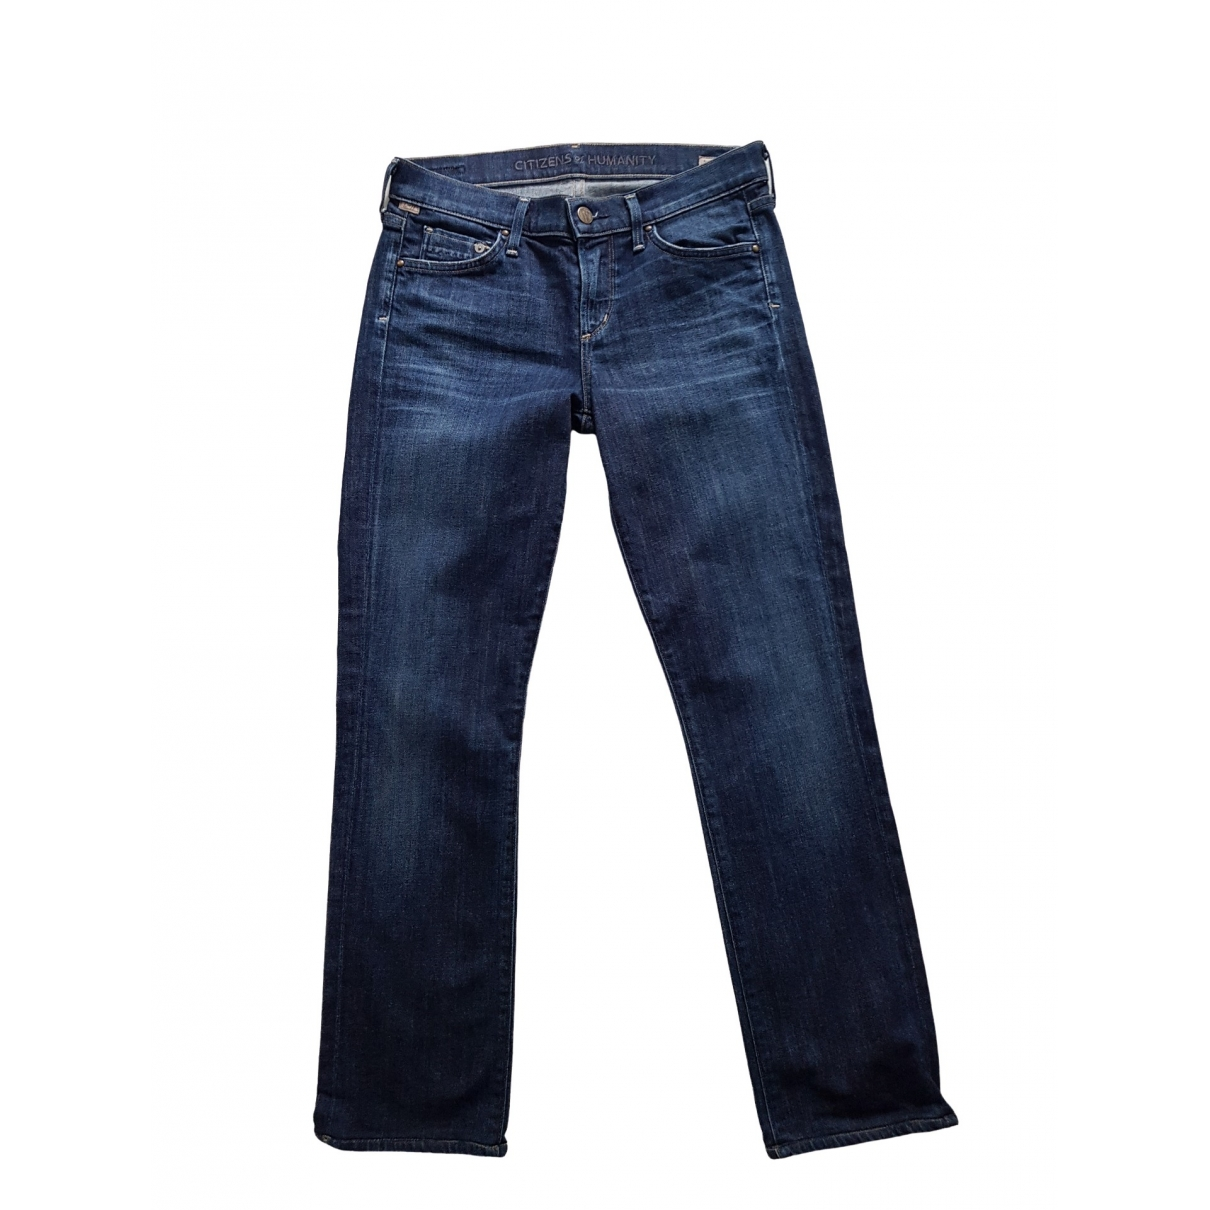 Citizens Of Humanity \N Blue Denim - Jeans Jeans for Women 27 US